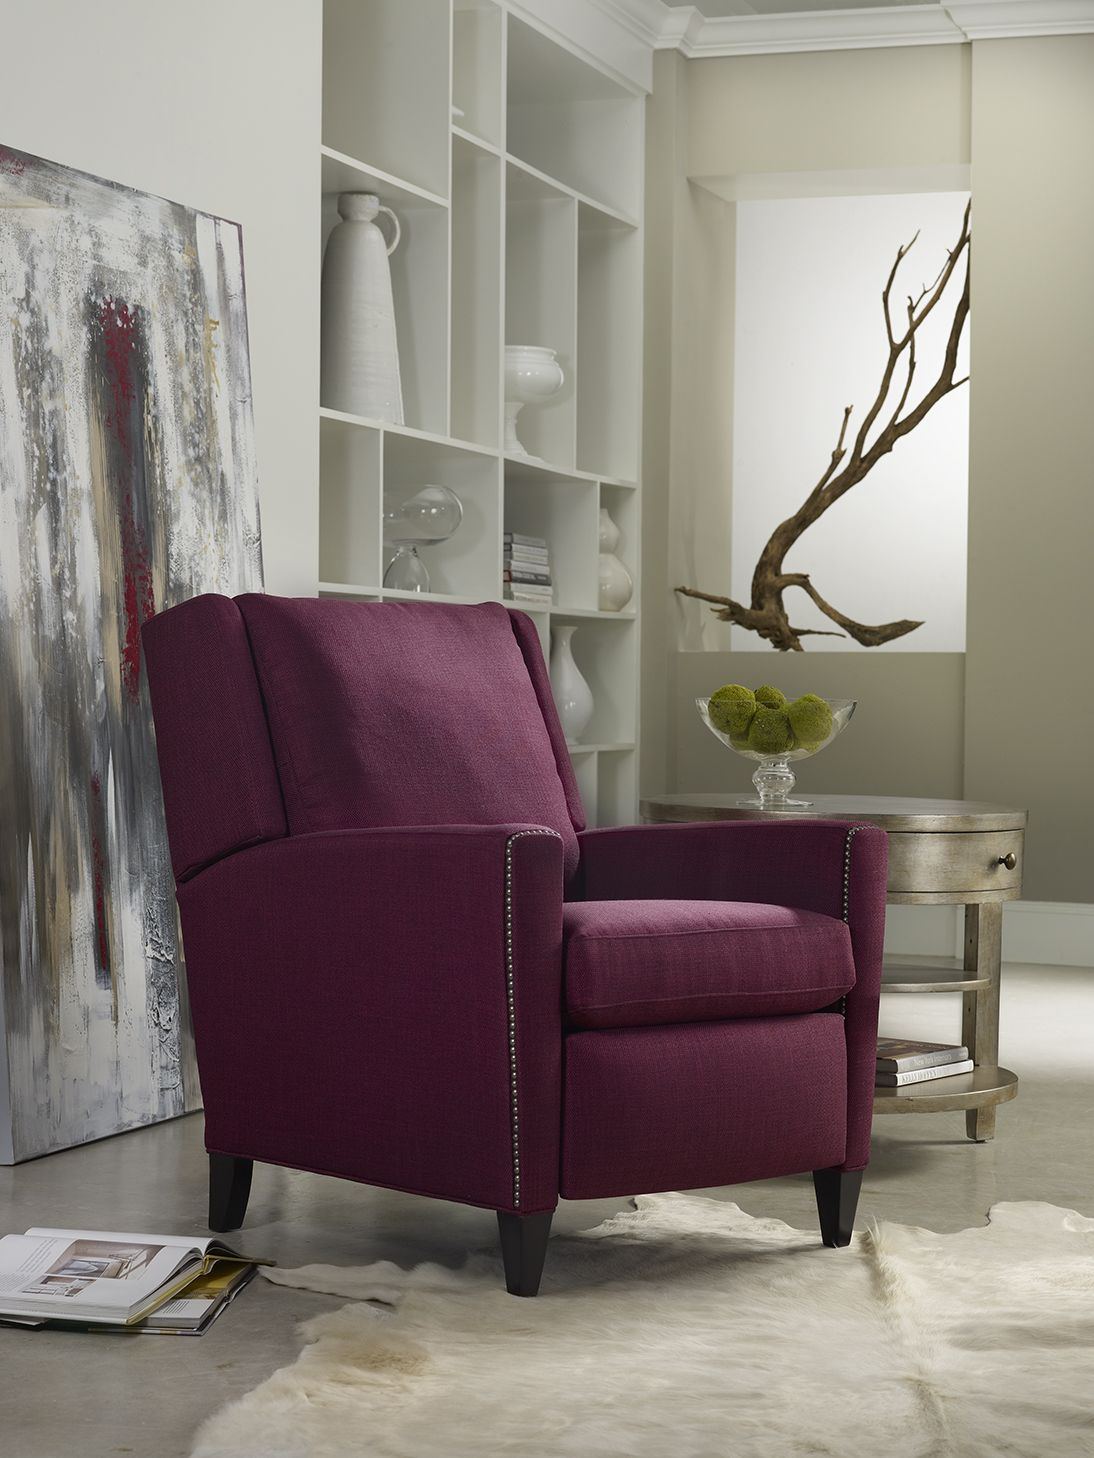 Raspberry Bedroom Not Your Parents Recliner Check Out Our Graydon Recliner In A